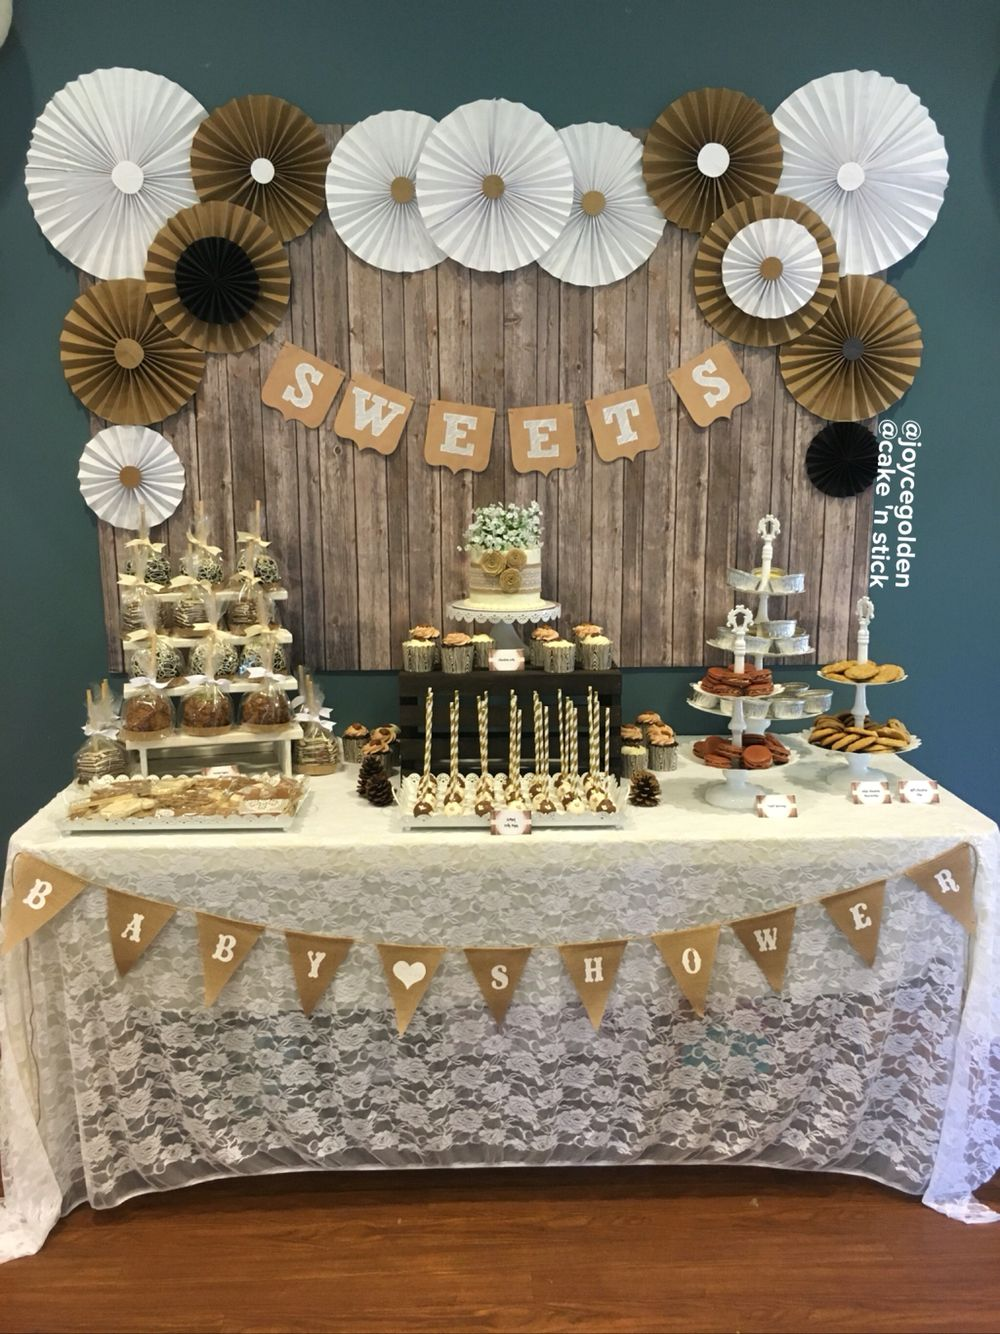 Find Inspiration To Create A Memorable Baby Shower With The